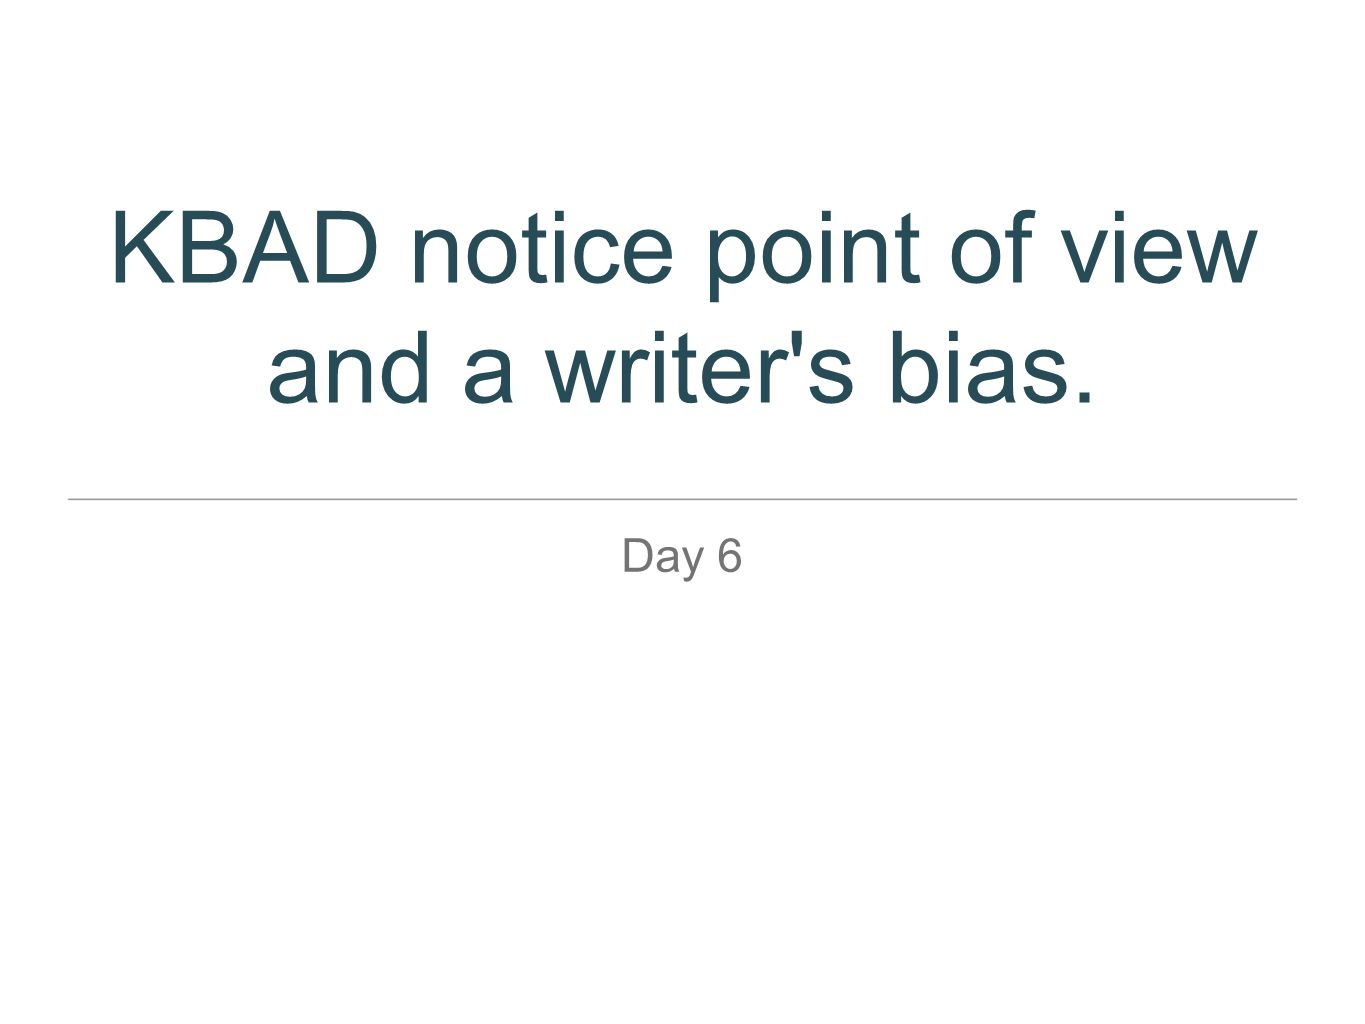 KBAD notice point of view and a writer s bias.